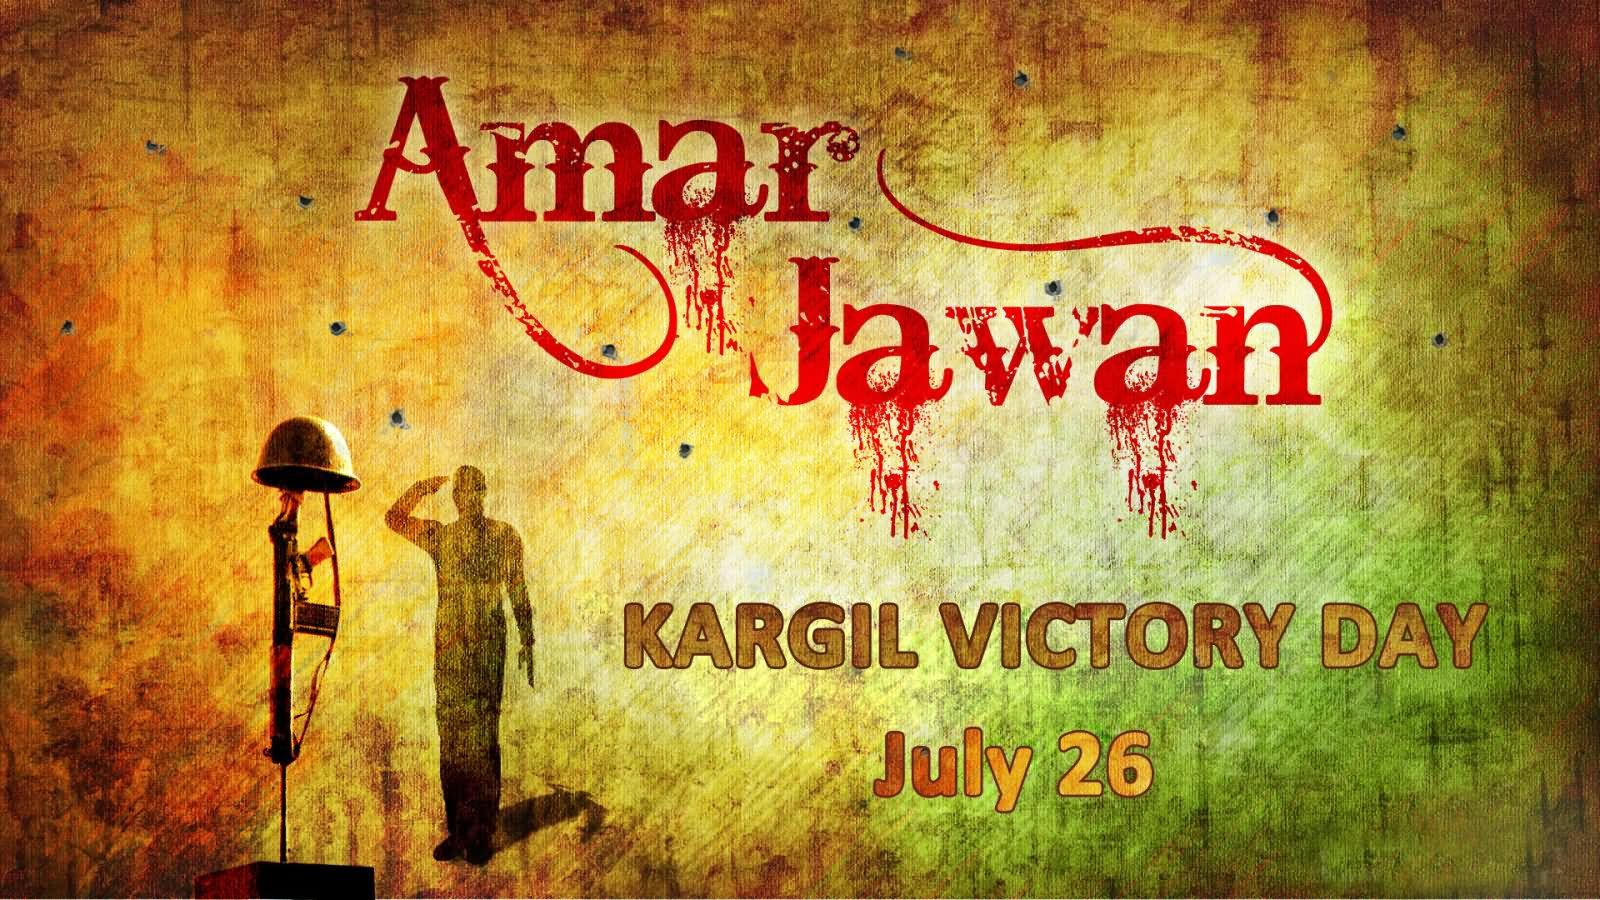 On 17th Kargil Diwas, we remember and honor the courage